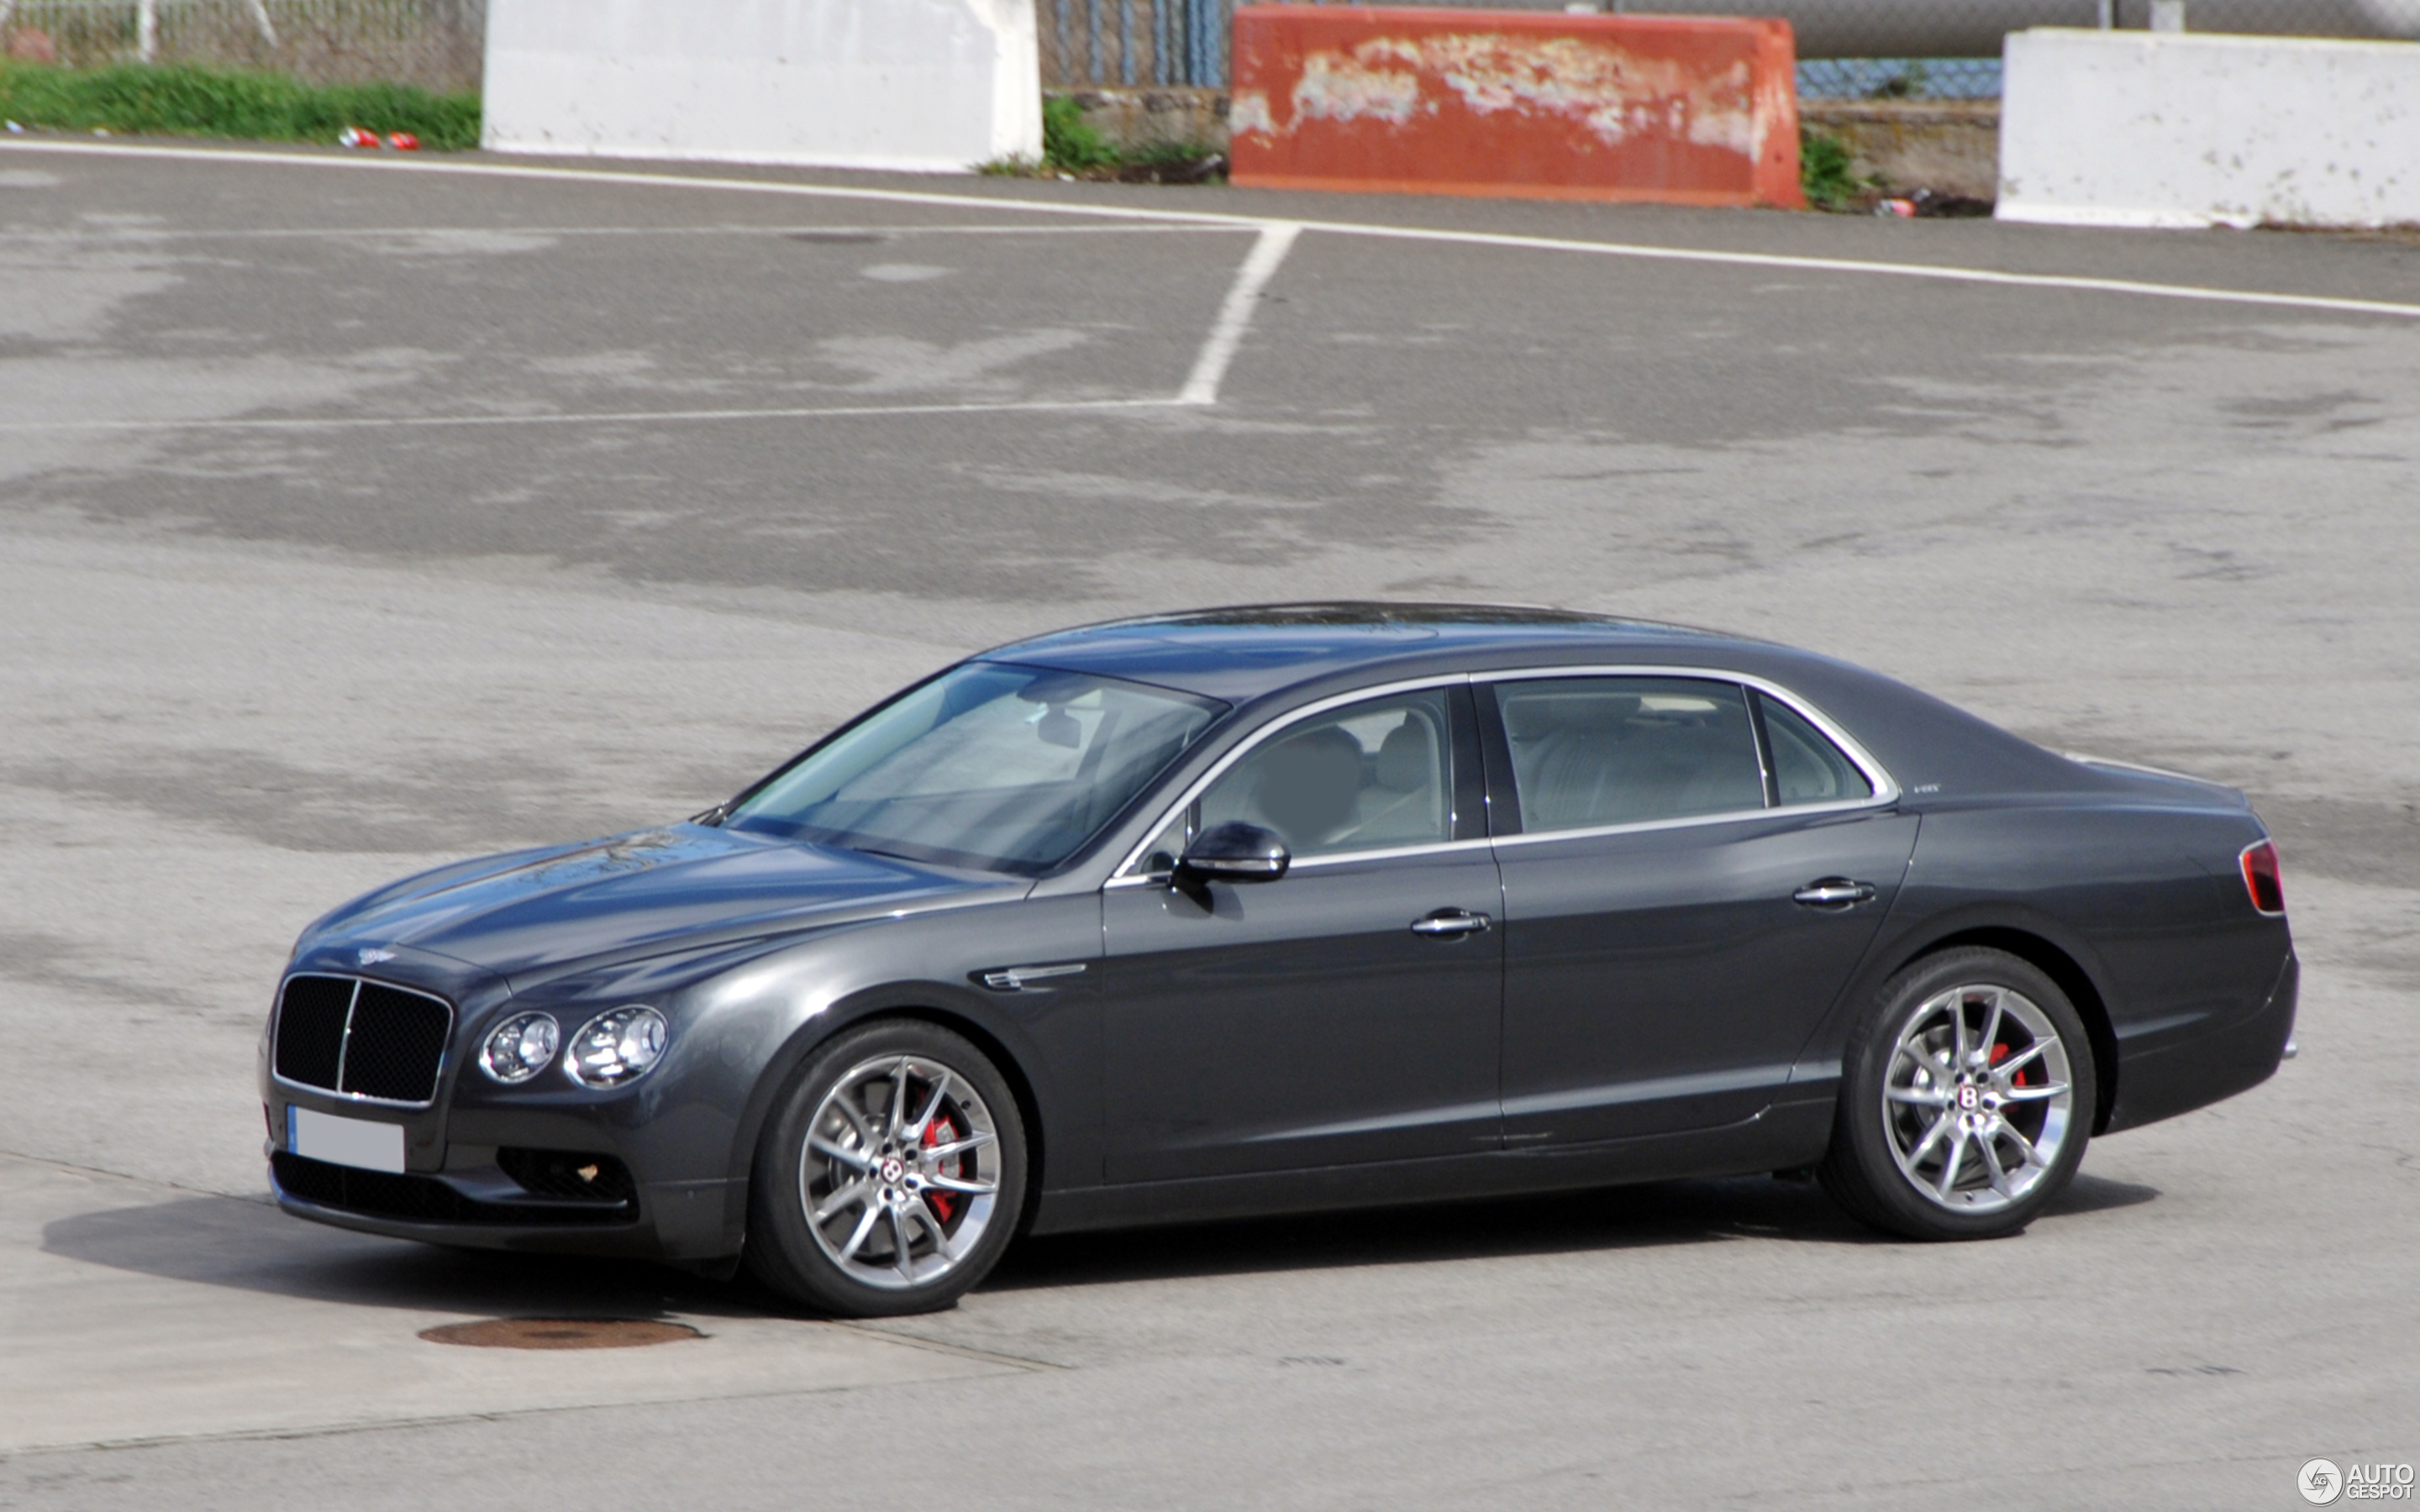 news spur photos specs bentley flying continental makes speed